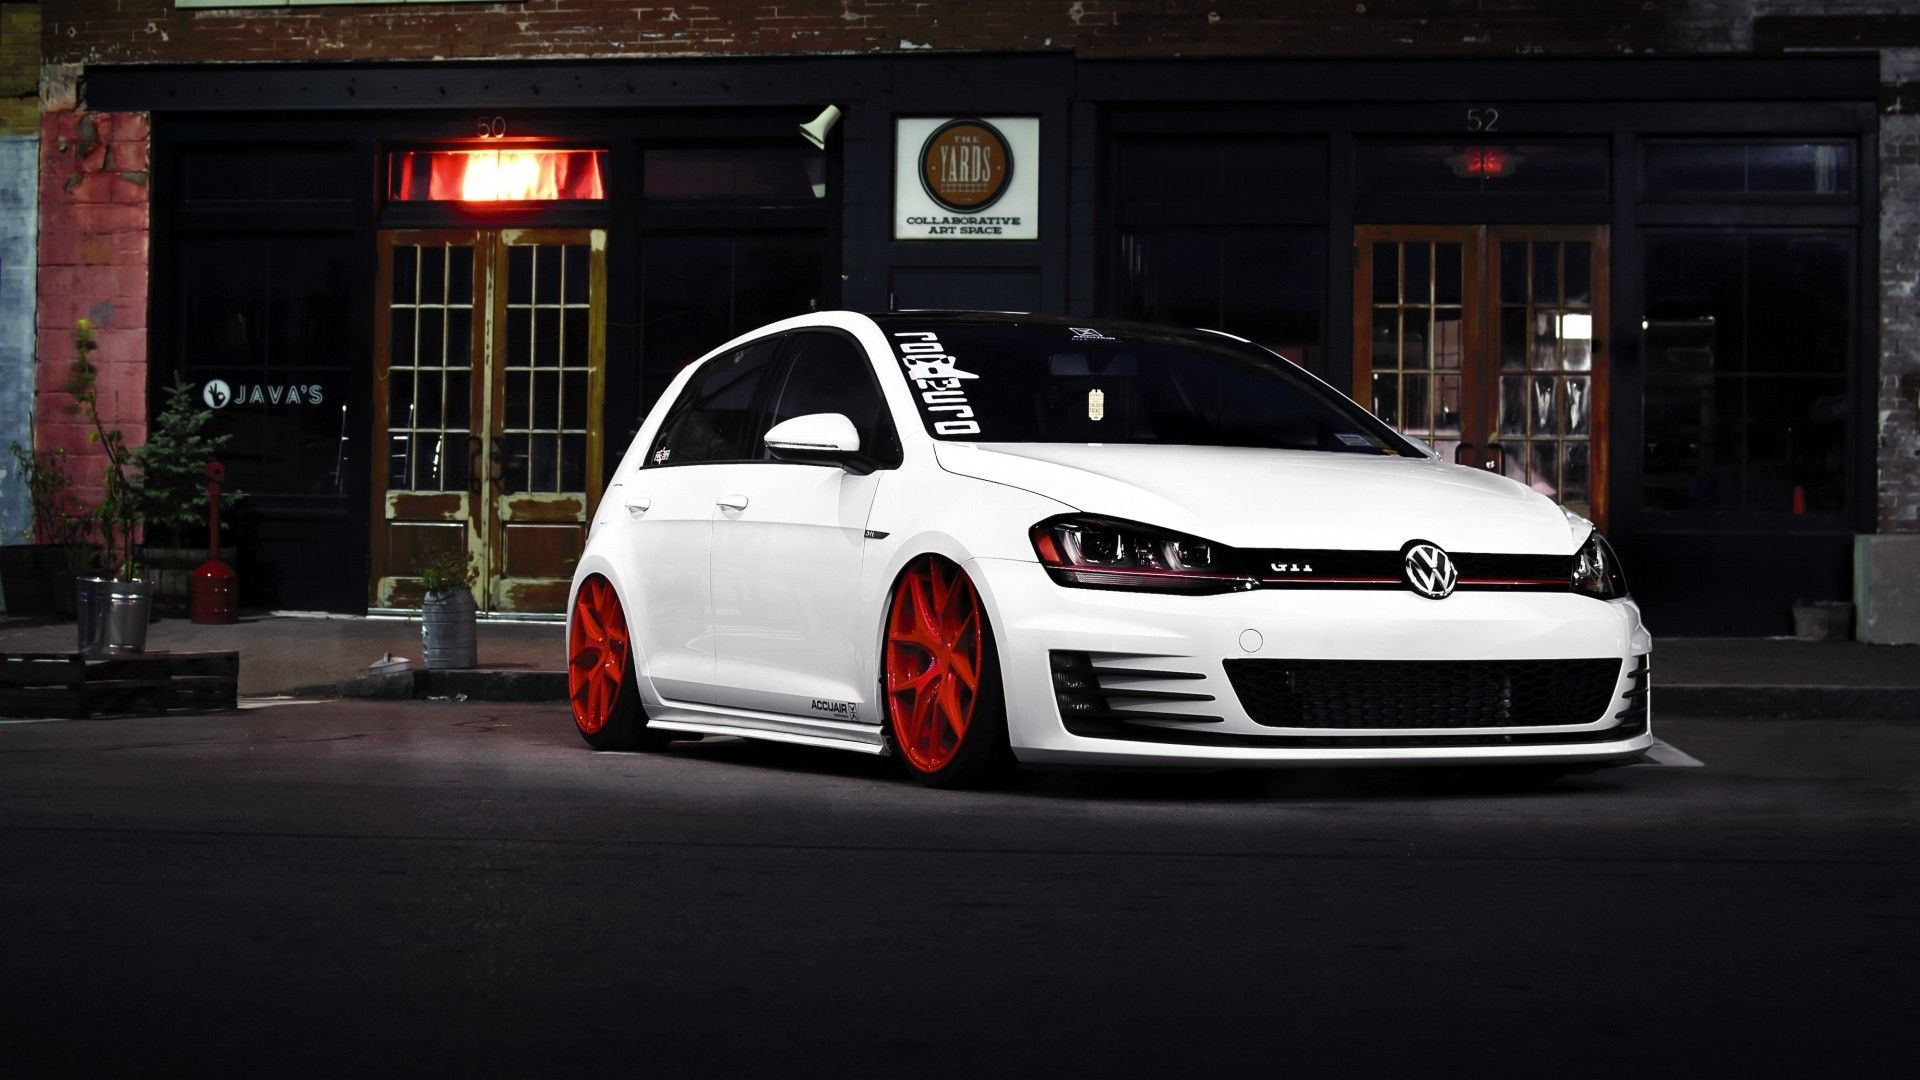 Golf Gti Wallpapers Top Free Golf Gti Backgrounds